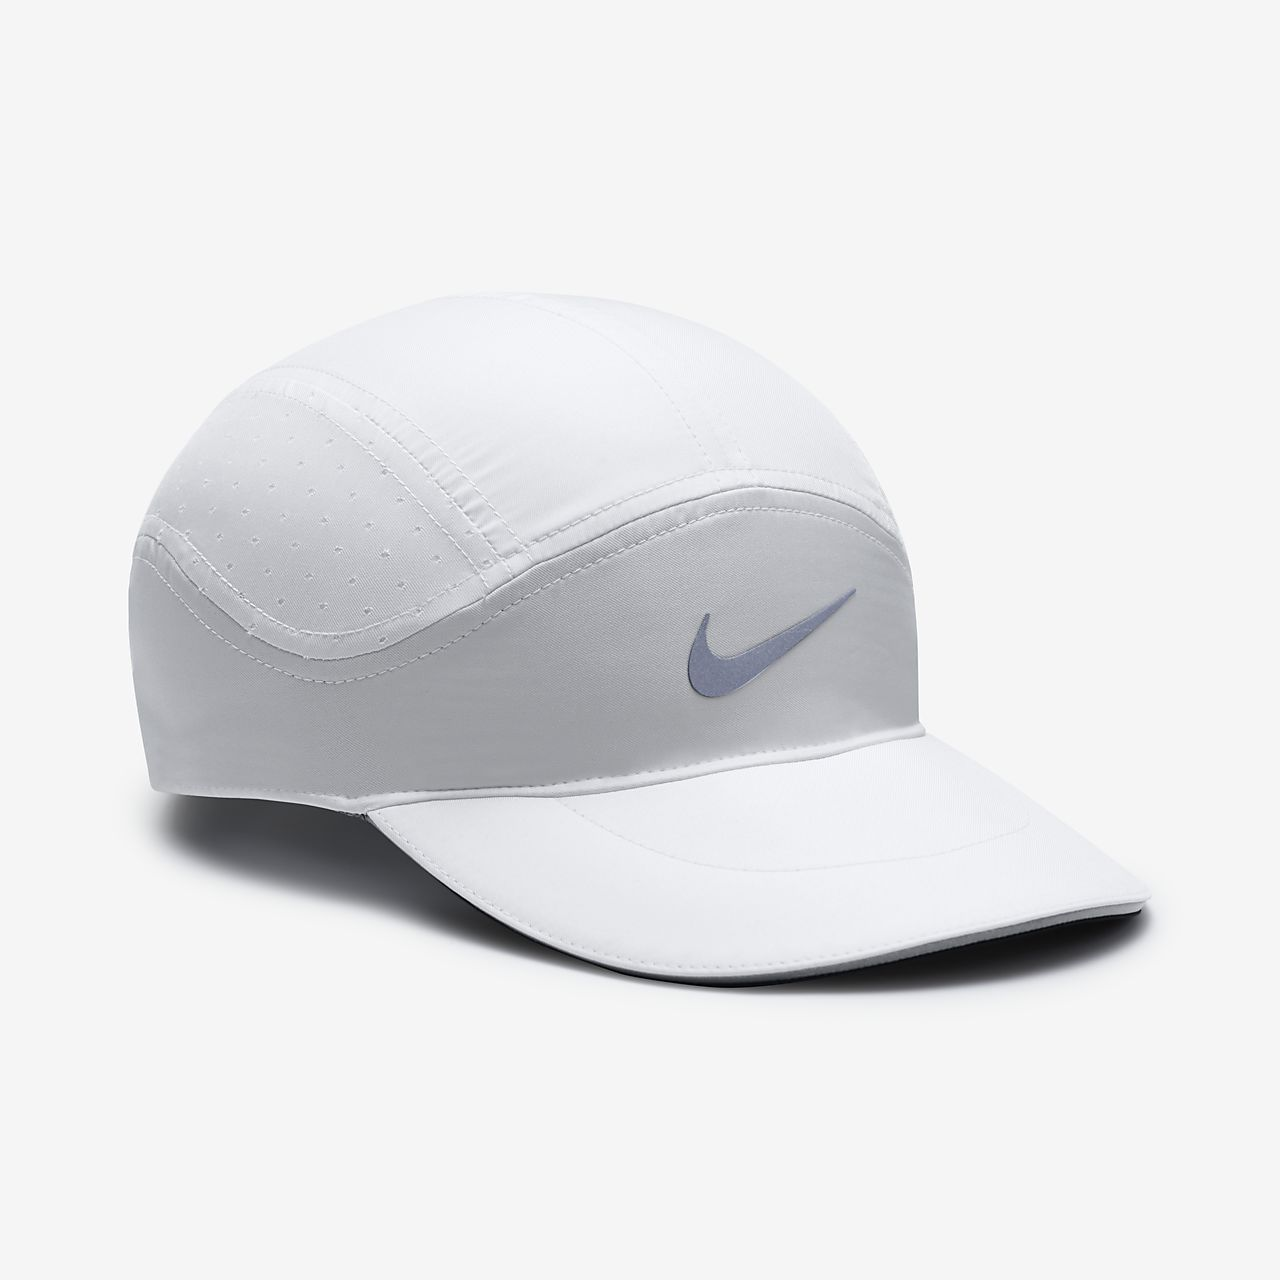 783d3de7407f07 Low Resolution Nike AeroBill Running Hat Nike AeroBill Running Hat